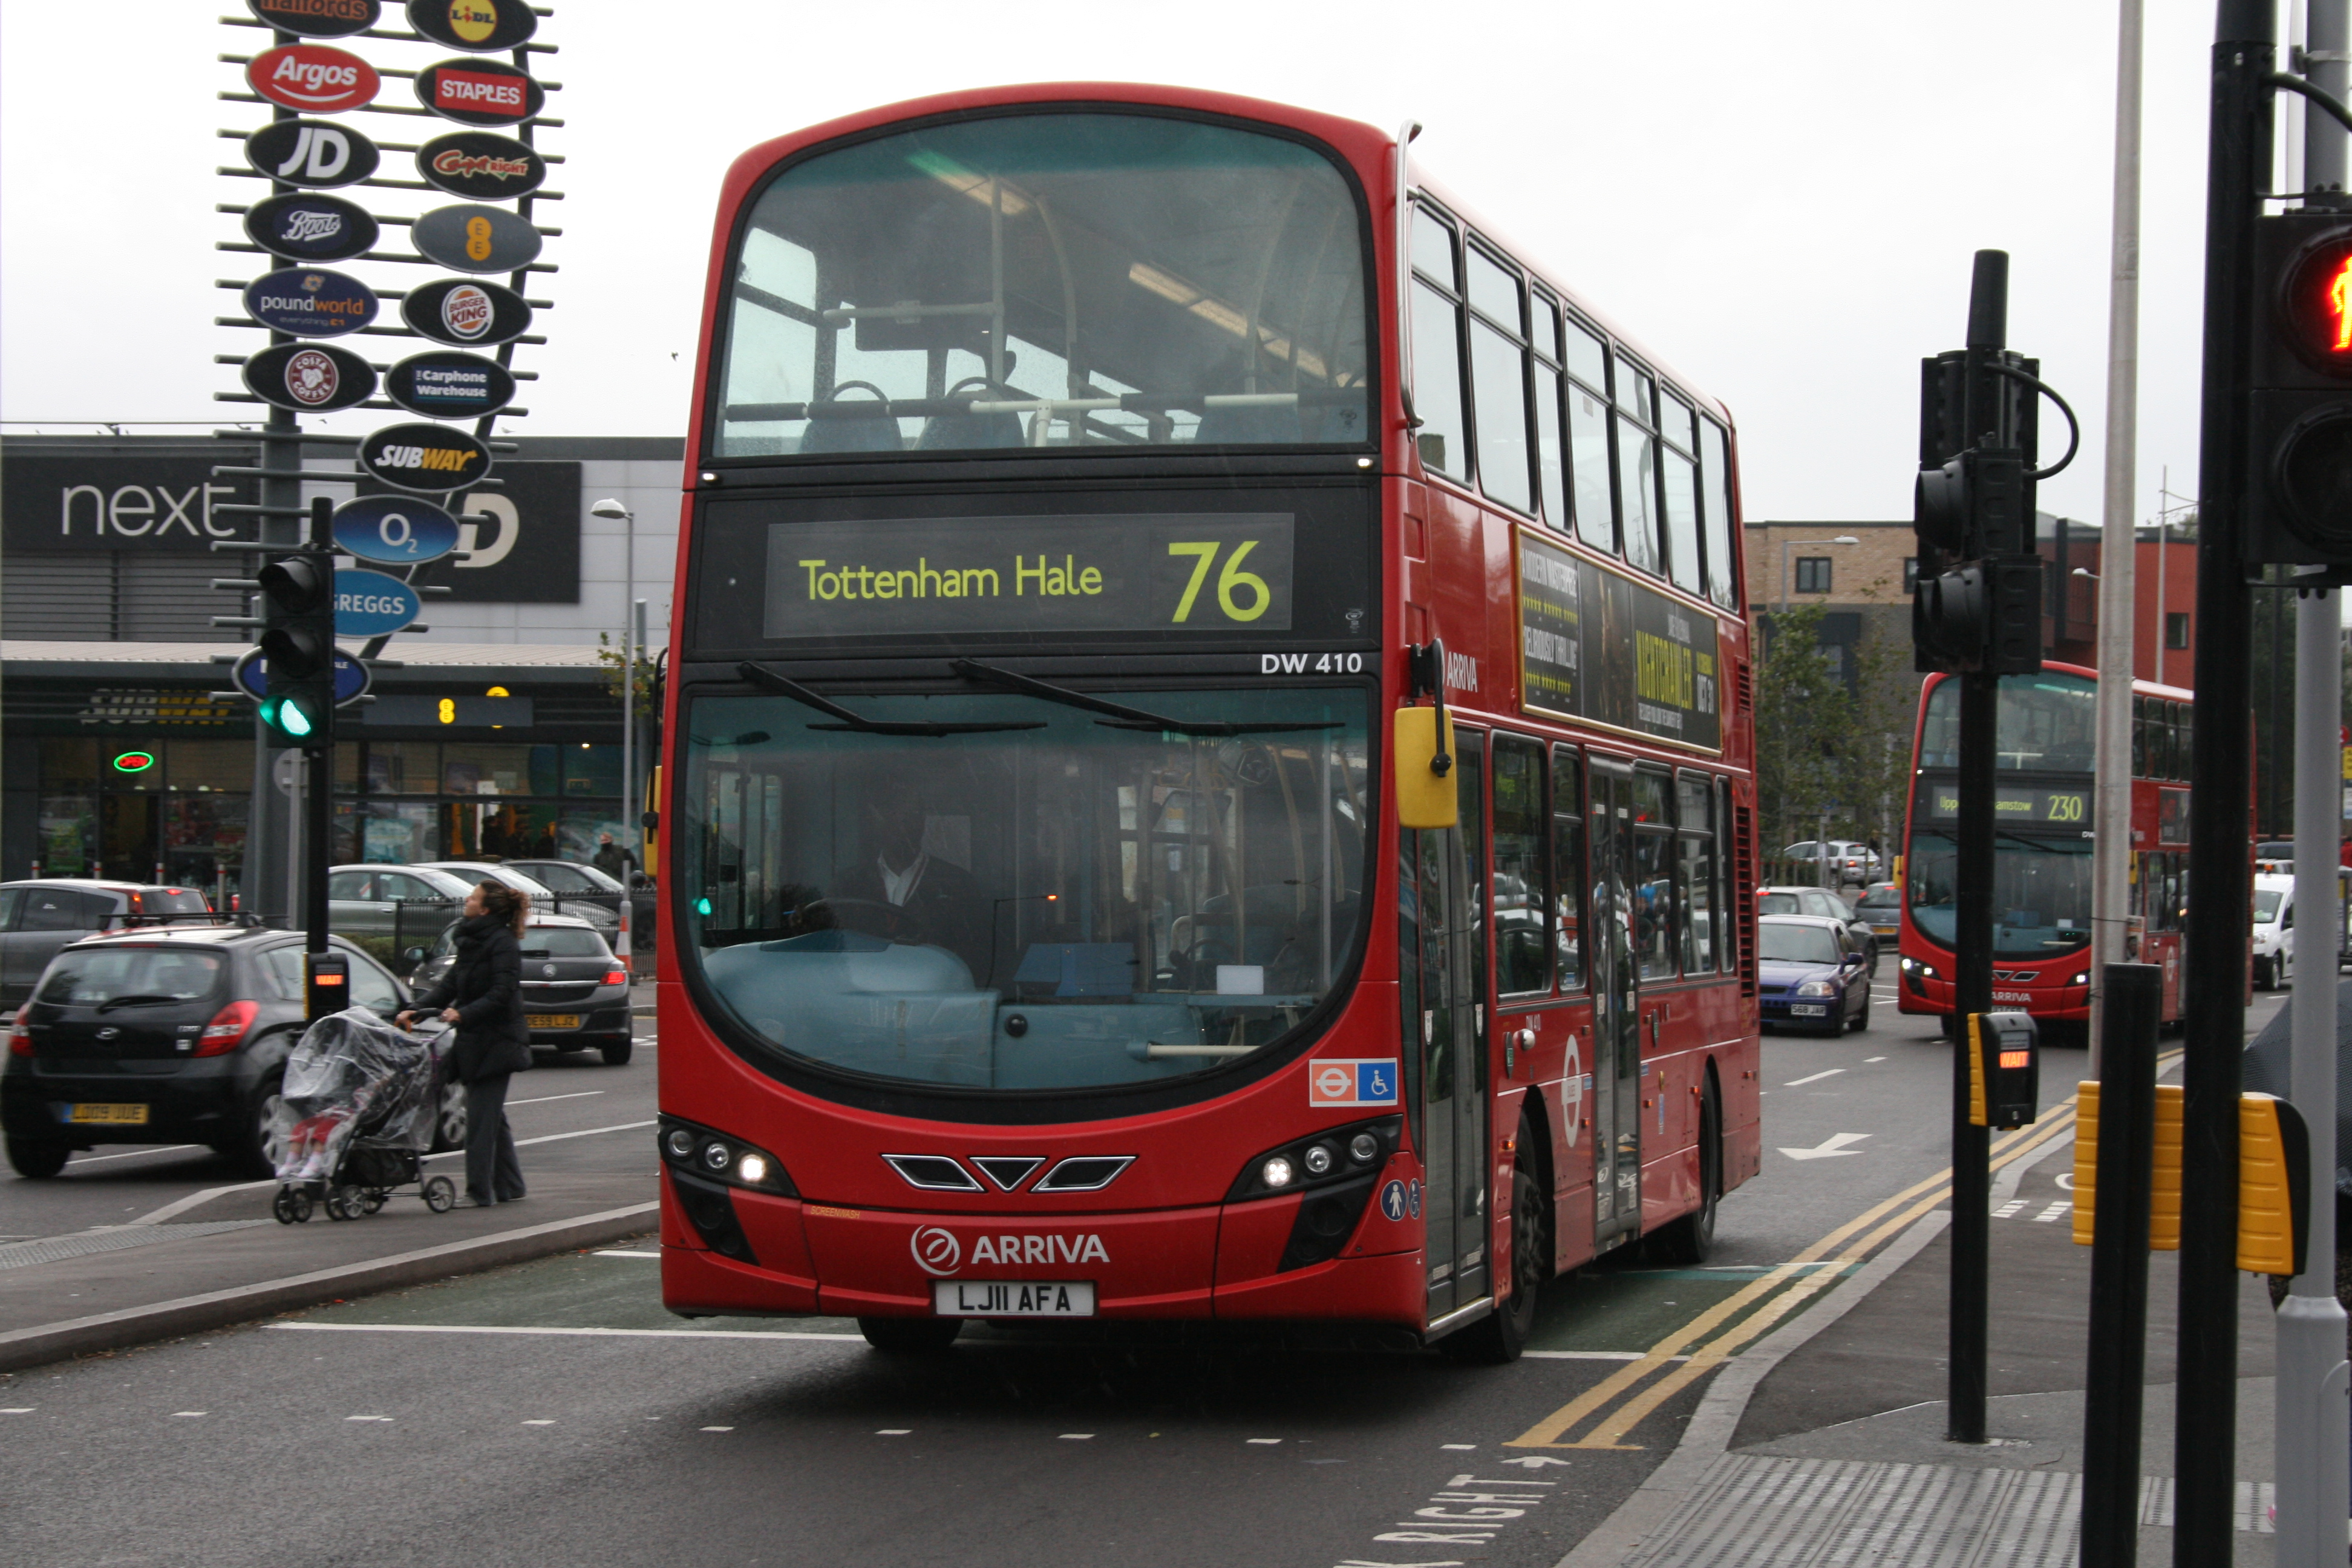 File Arriva London Dw410 On Route 76 Tottenham Hale Bus